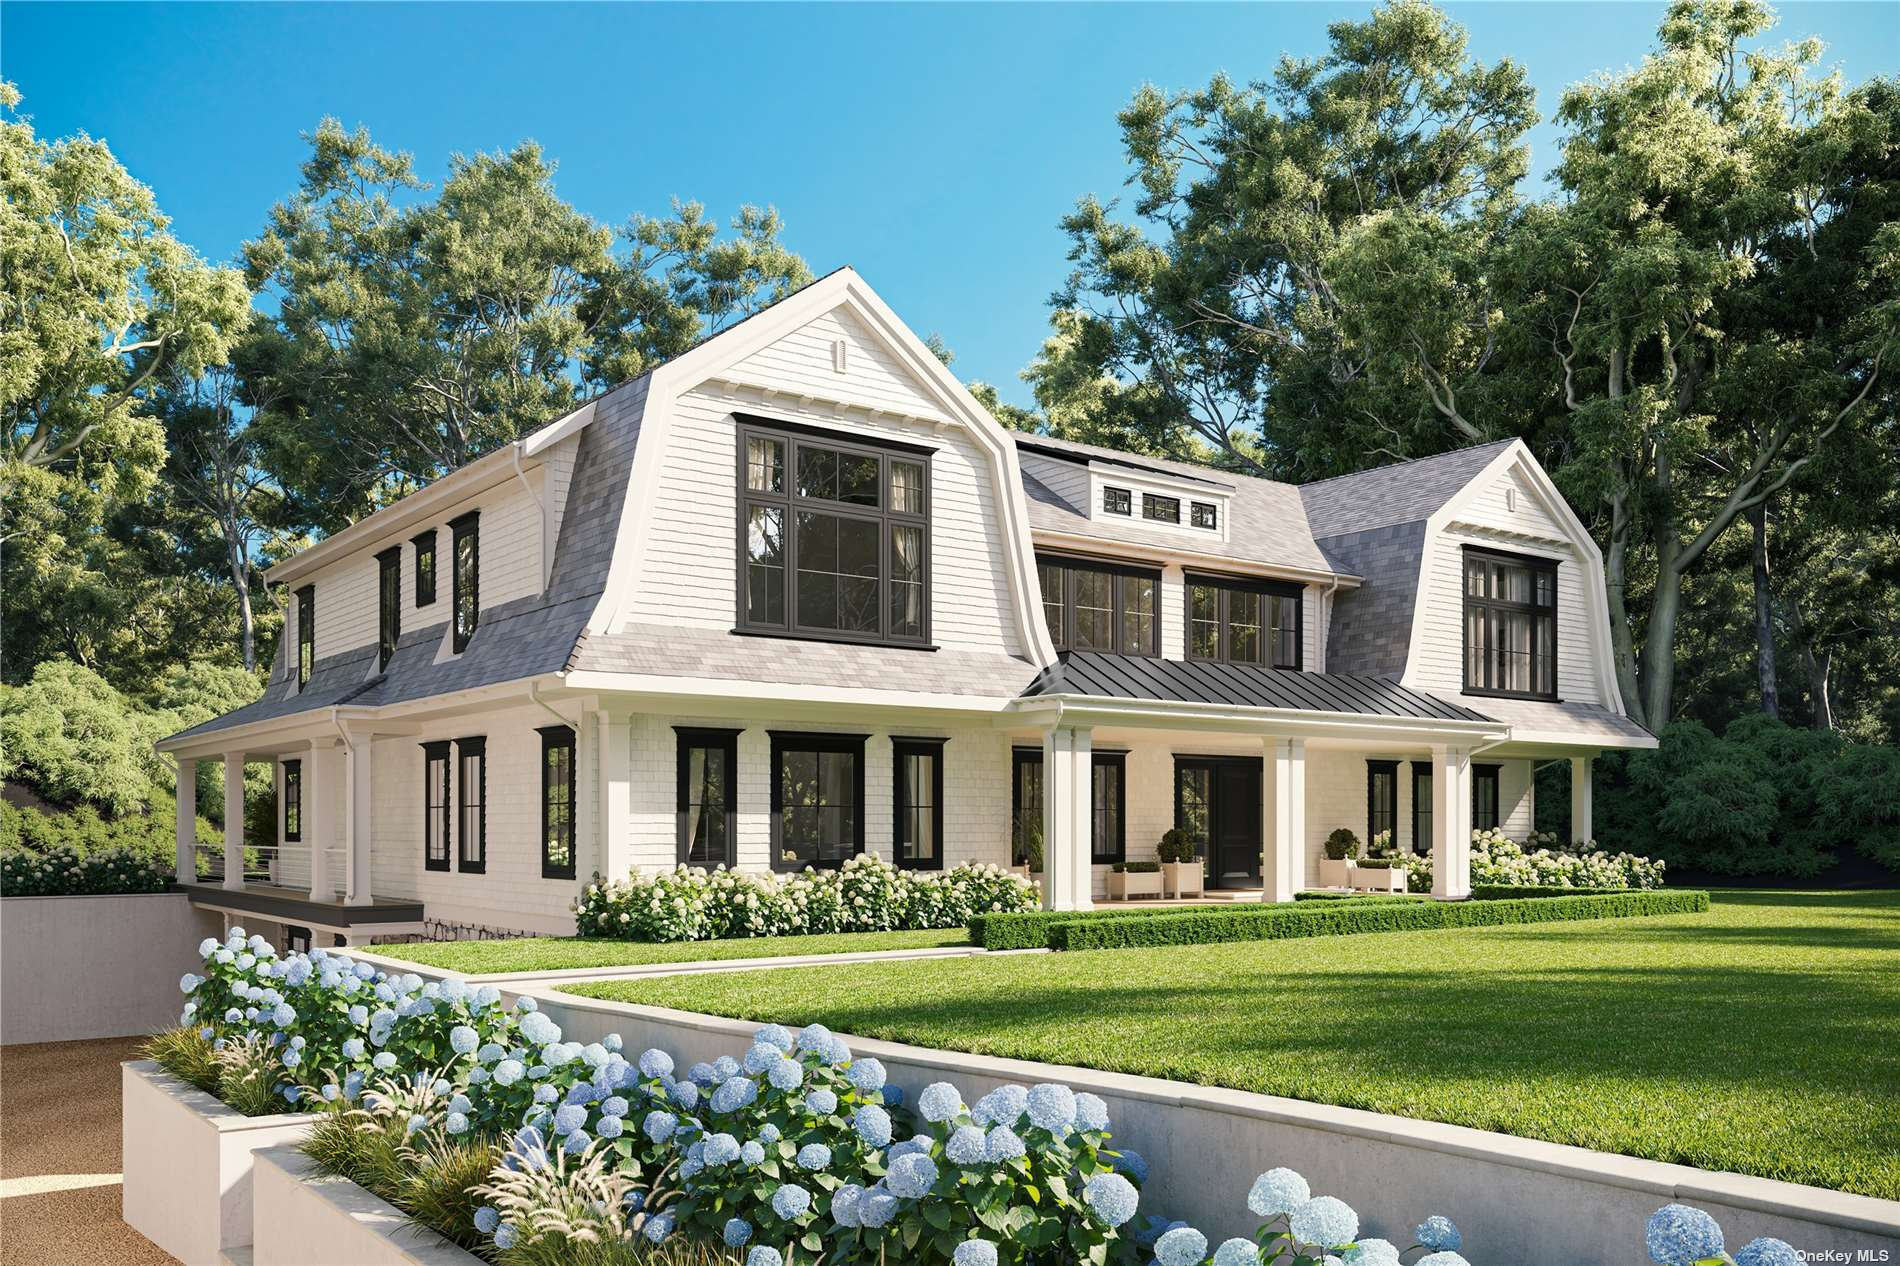 Brand new construction sited perfectly on 1.84 +/- acres in Water Mill, boasts 11,000SF +/-,  double height ceiling leading to a huge great room with fireplace overlooking the yard. Chefs' kitchen is equipped with Wolf range, dual Sub-Zero refrigerators, dual dishwashers, custom cabinetry, marble counter tops, pantry, breakfast area with sliding doors to the outdoor patio, and den. First floor includes a formal dining room, separate living room/study with fireplace, en-suite guest room and secondary suite with additional full bathroom, powder room, laundry and elevator. The second floor features three graciously sized en-suite guest bedrooms, laundry area, a primary bedroom suite with  private deck, separate office, deep walk-in closets and primary en-suite bathroom with double sink vanities, free standing soaking tub, shower. spacious shower. The fully finished lower level iwith two guest en-suite bedrooms, media room, and gym.  Heated Gunite Pool, pool house Tennis, 5 car Gargage